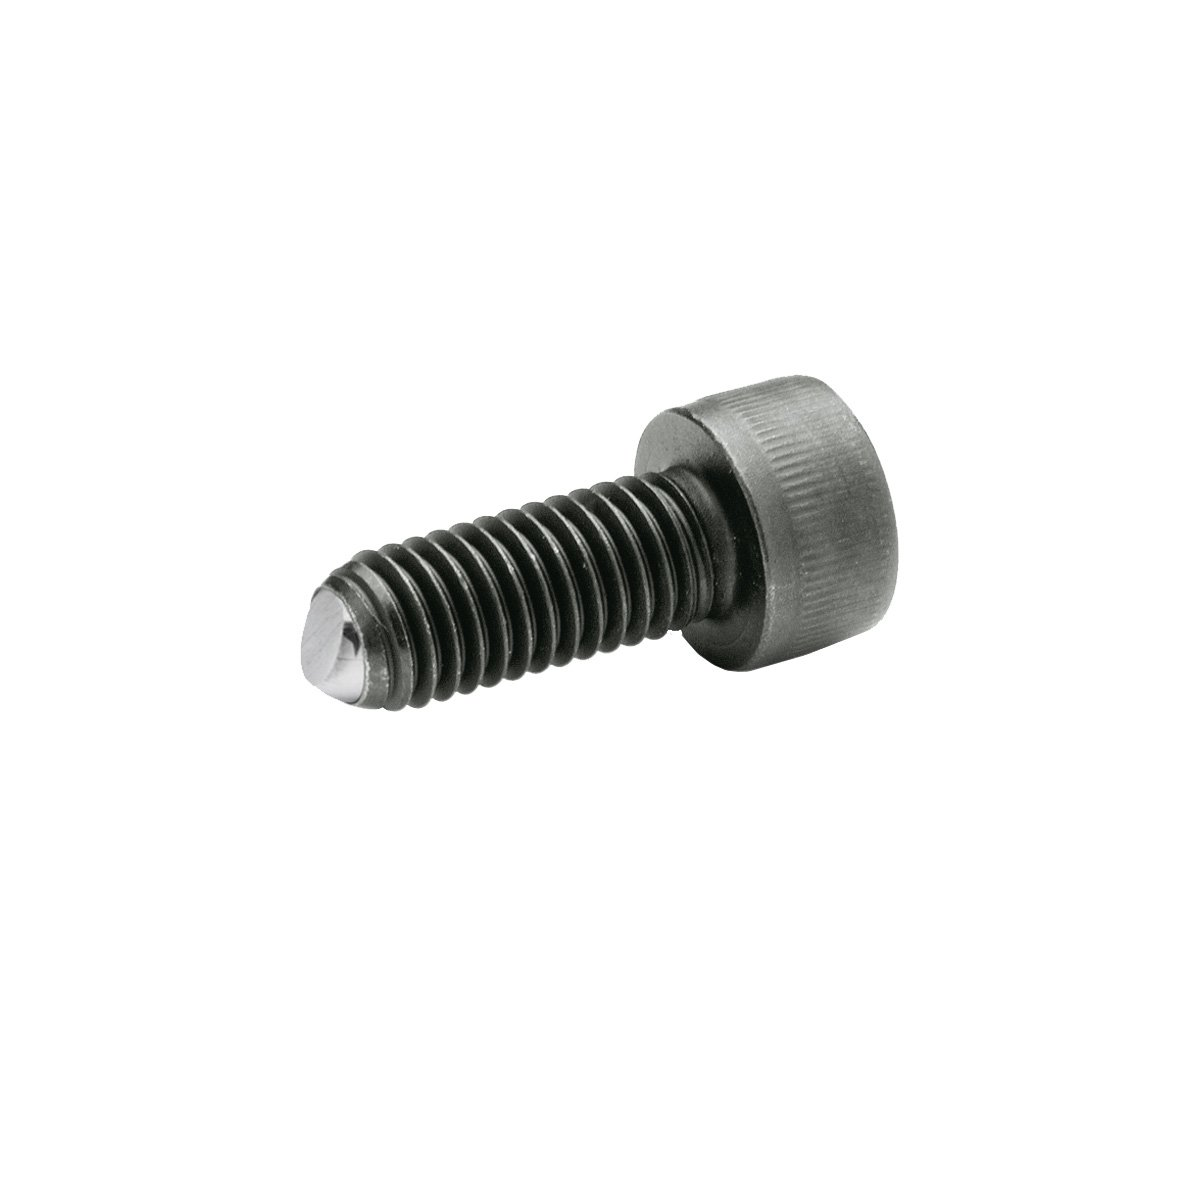 J.W. Winco 10N60P47/V GN606 Socket Head Cap Screw with Flat Ball, Safety Twist Feature, M10 x 60 mm Thread Length, Alloy Steel, Black Oxide Finish